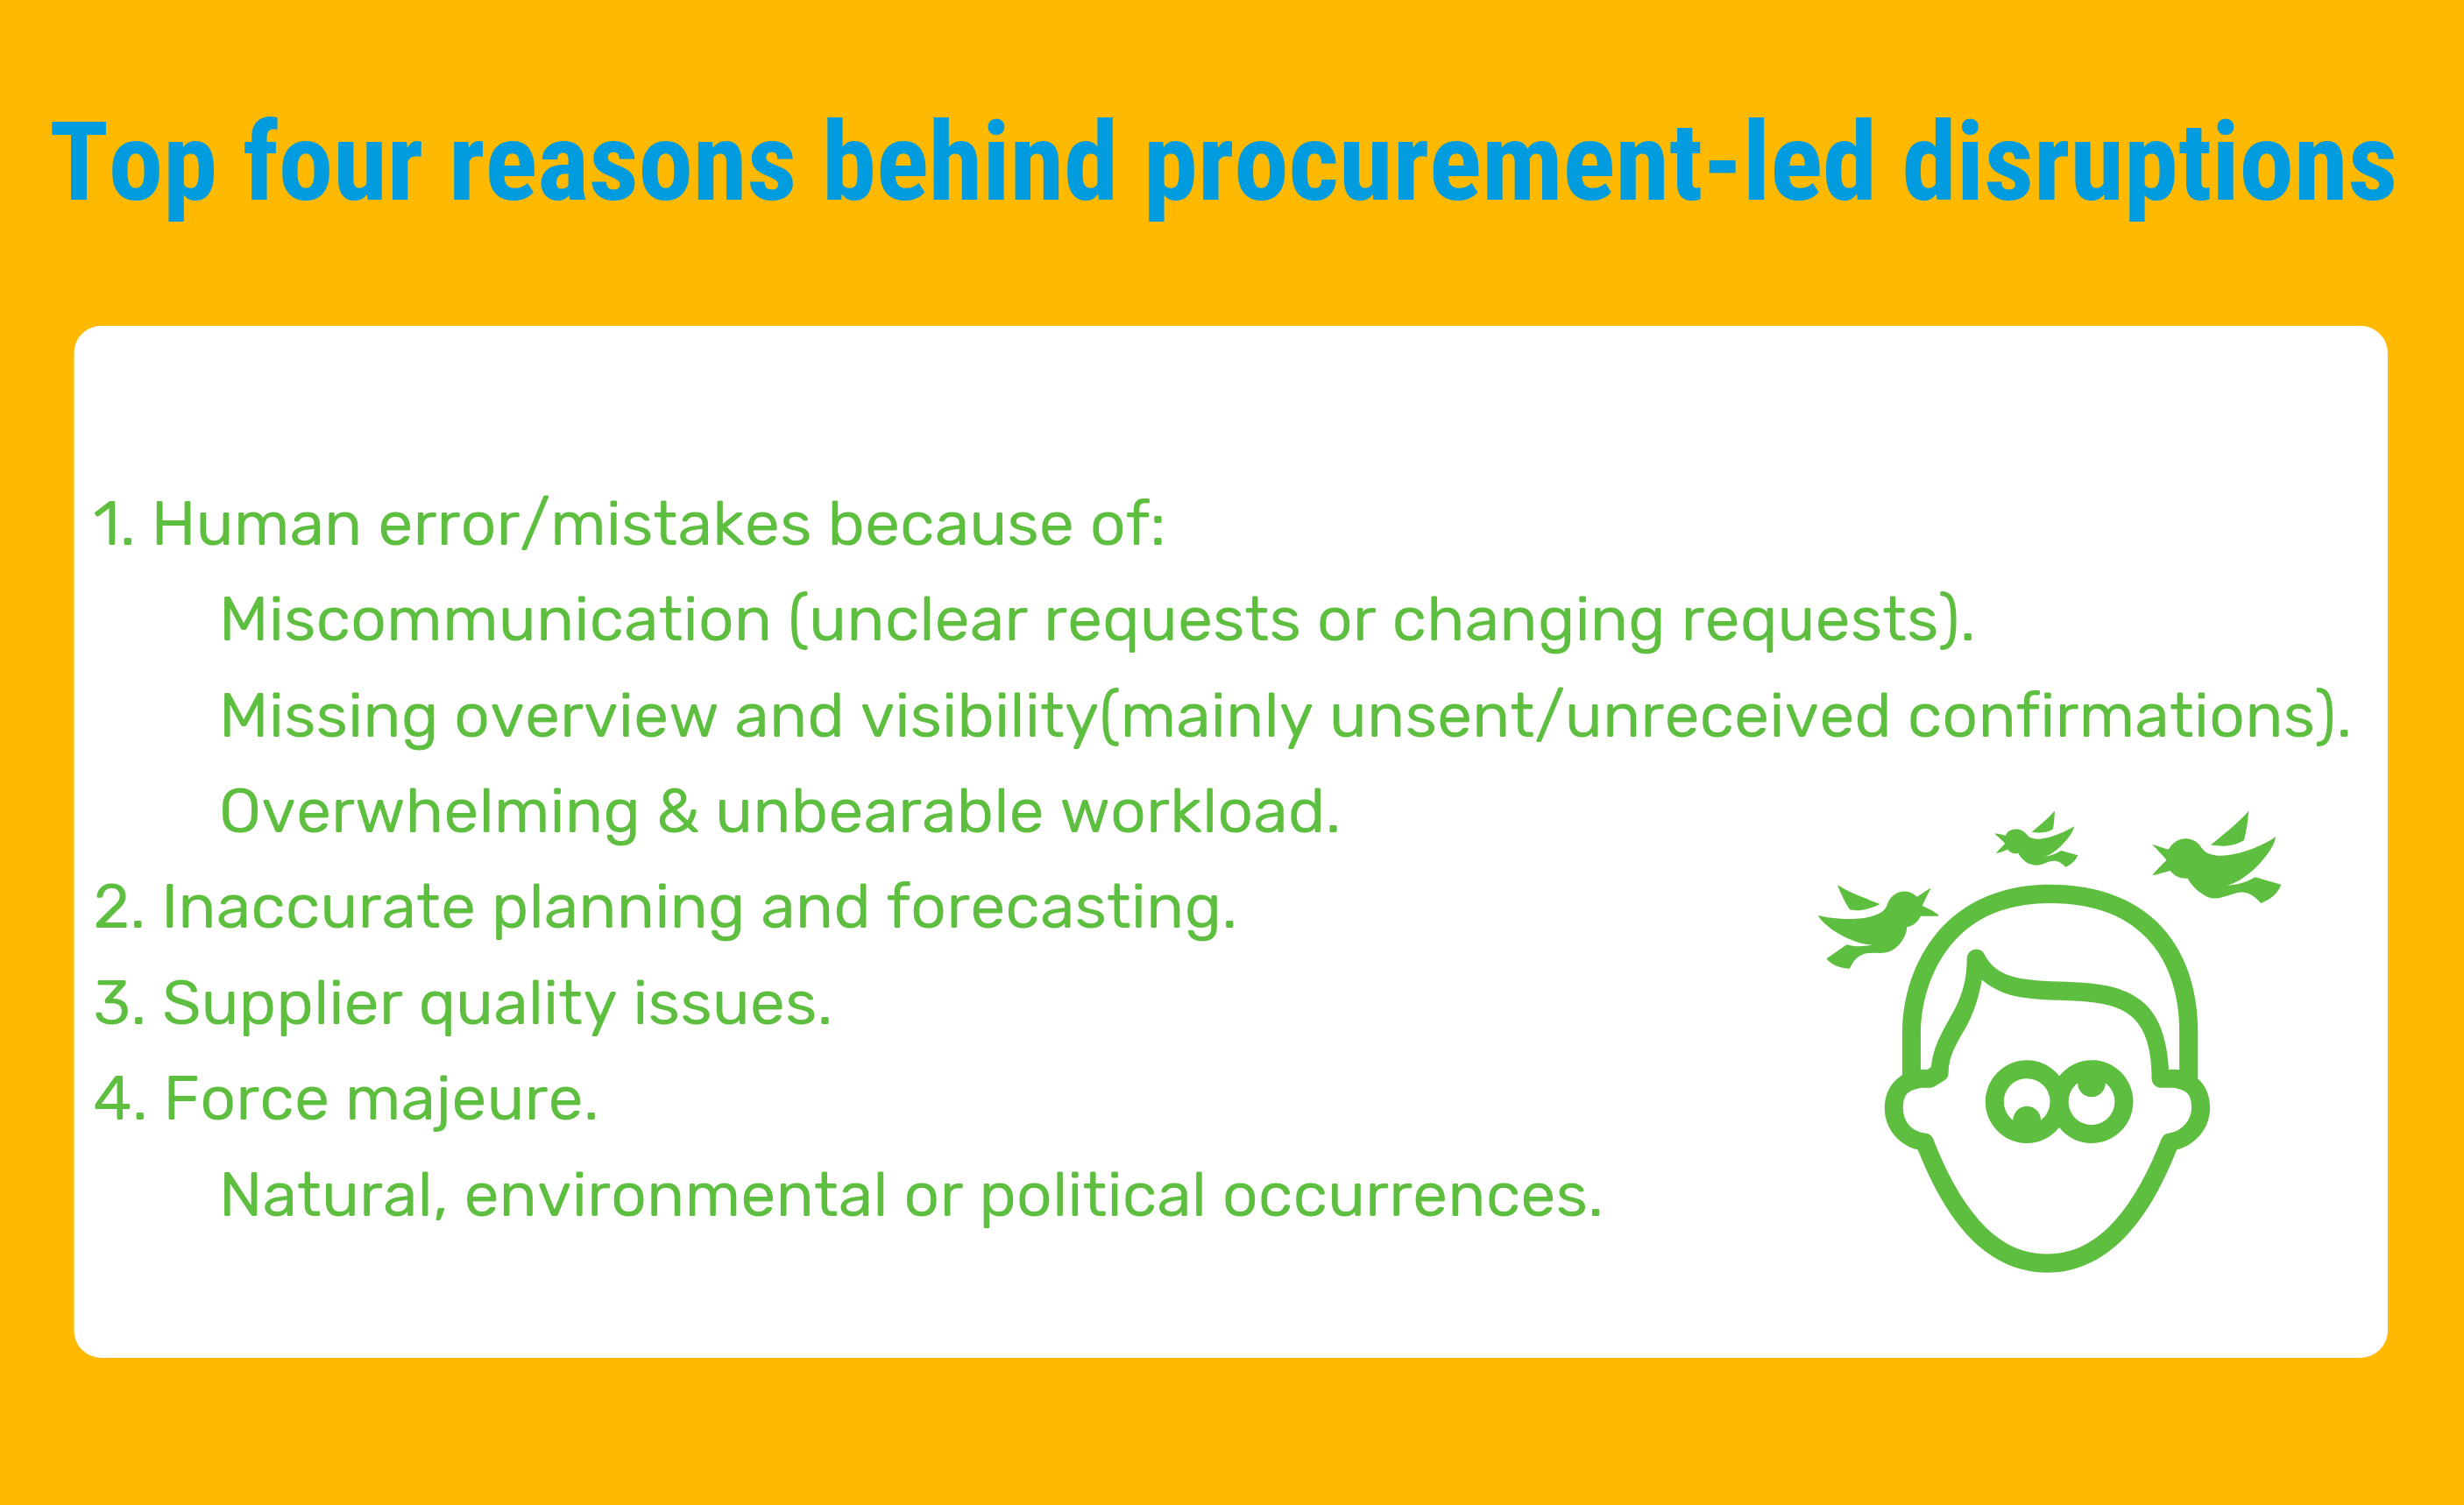 Top four reasons behind procurement-led disruptions